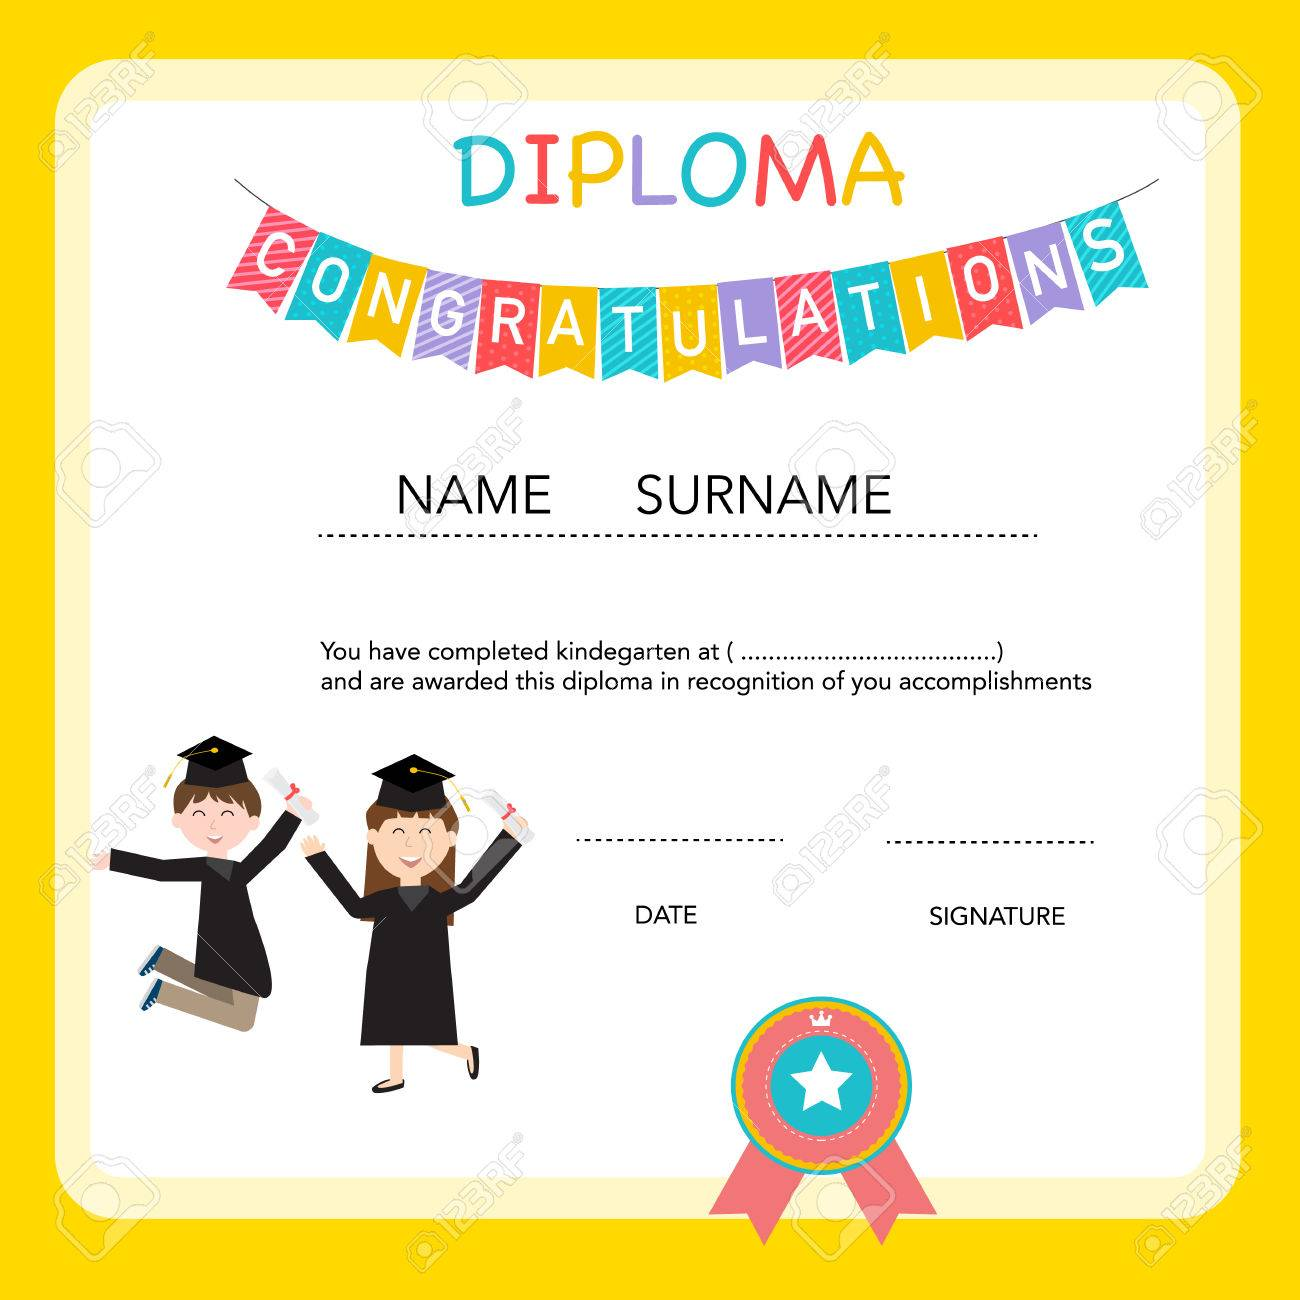 Certificate of kids diploma preschool kindergarten template certificate of kids diploma preschool kindergarten template background stock vector 52064371 yelopaper Image collections